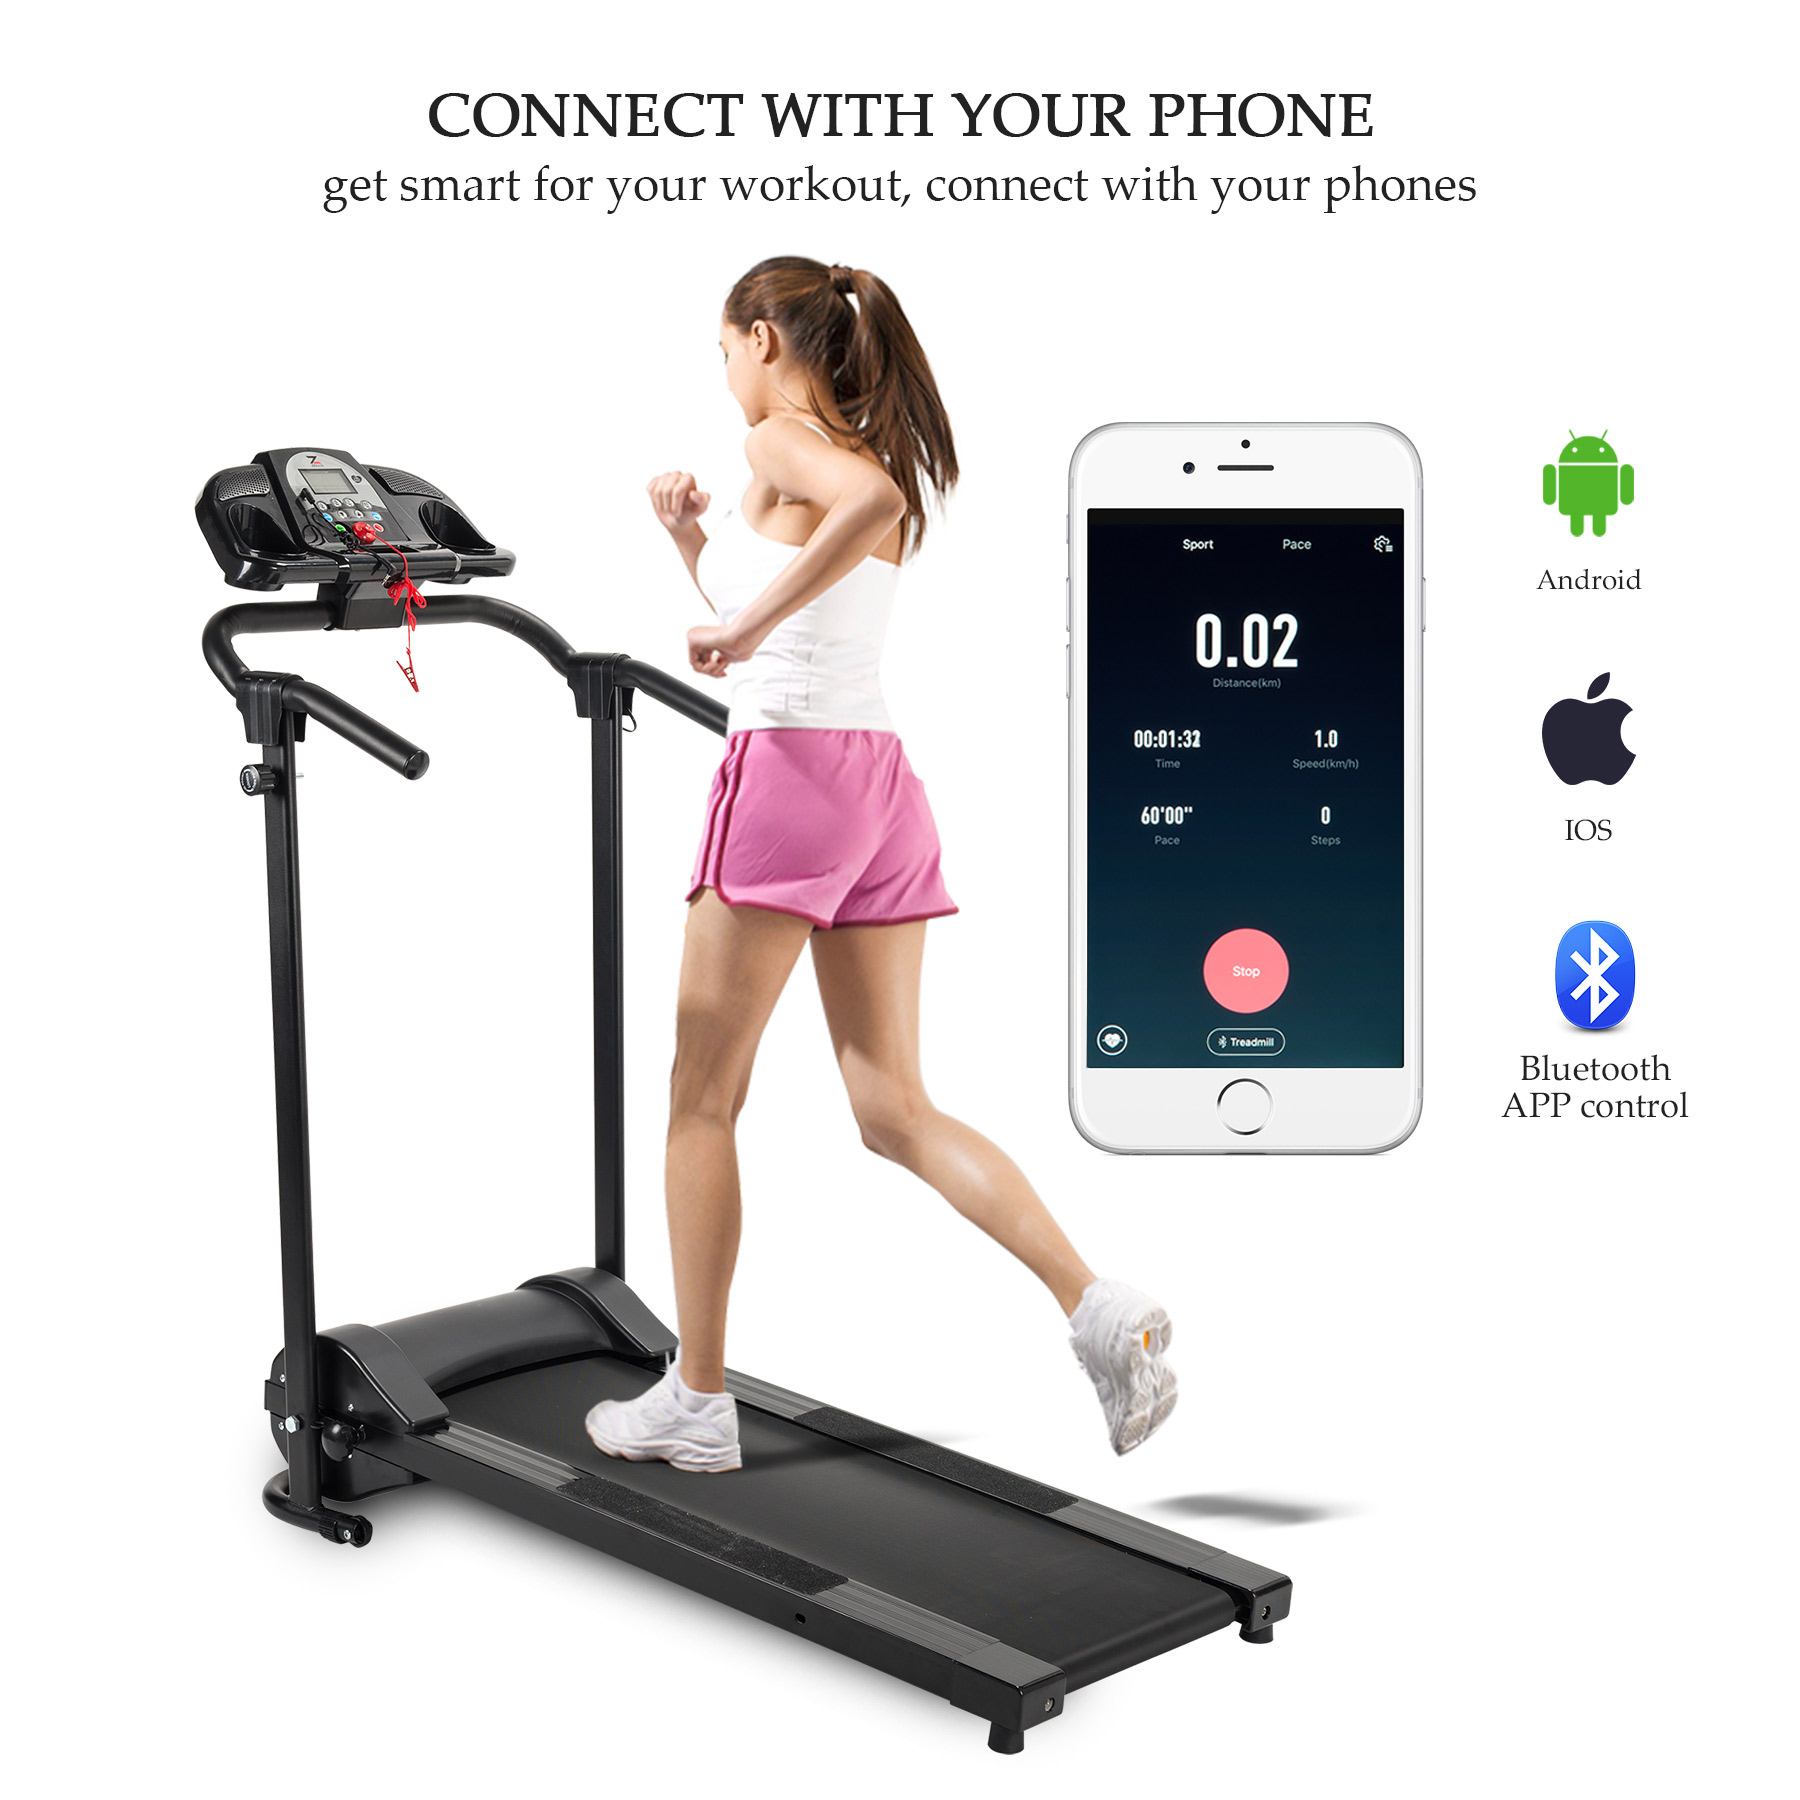 Folding Treadmill Electric Motorized Running Machine Home Gym w/ APP, Cup Holder & MP3 Player